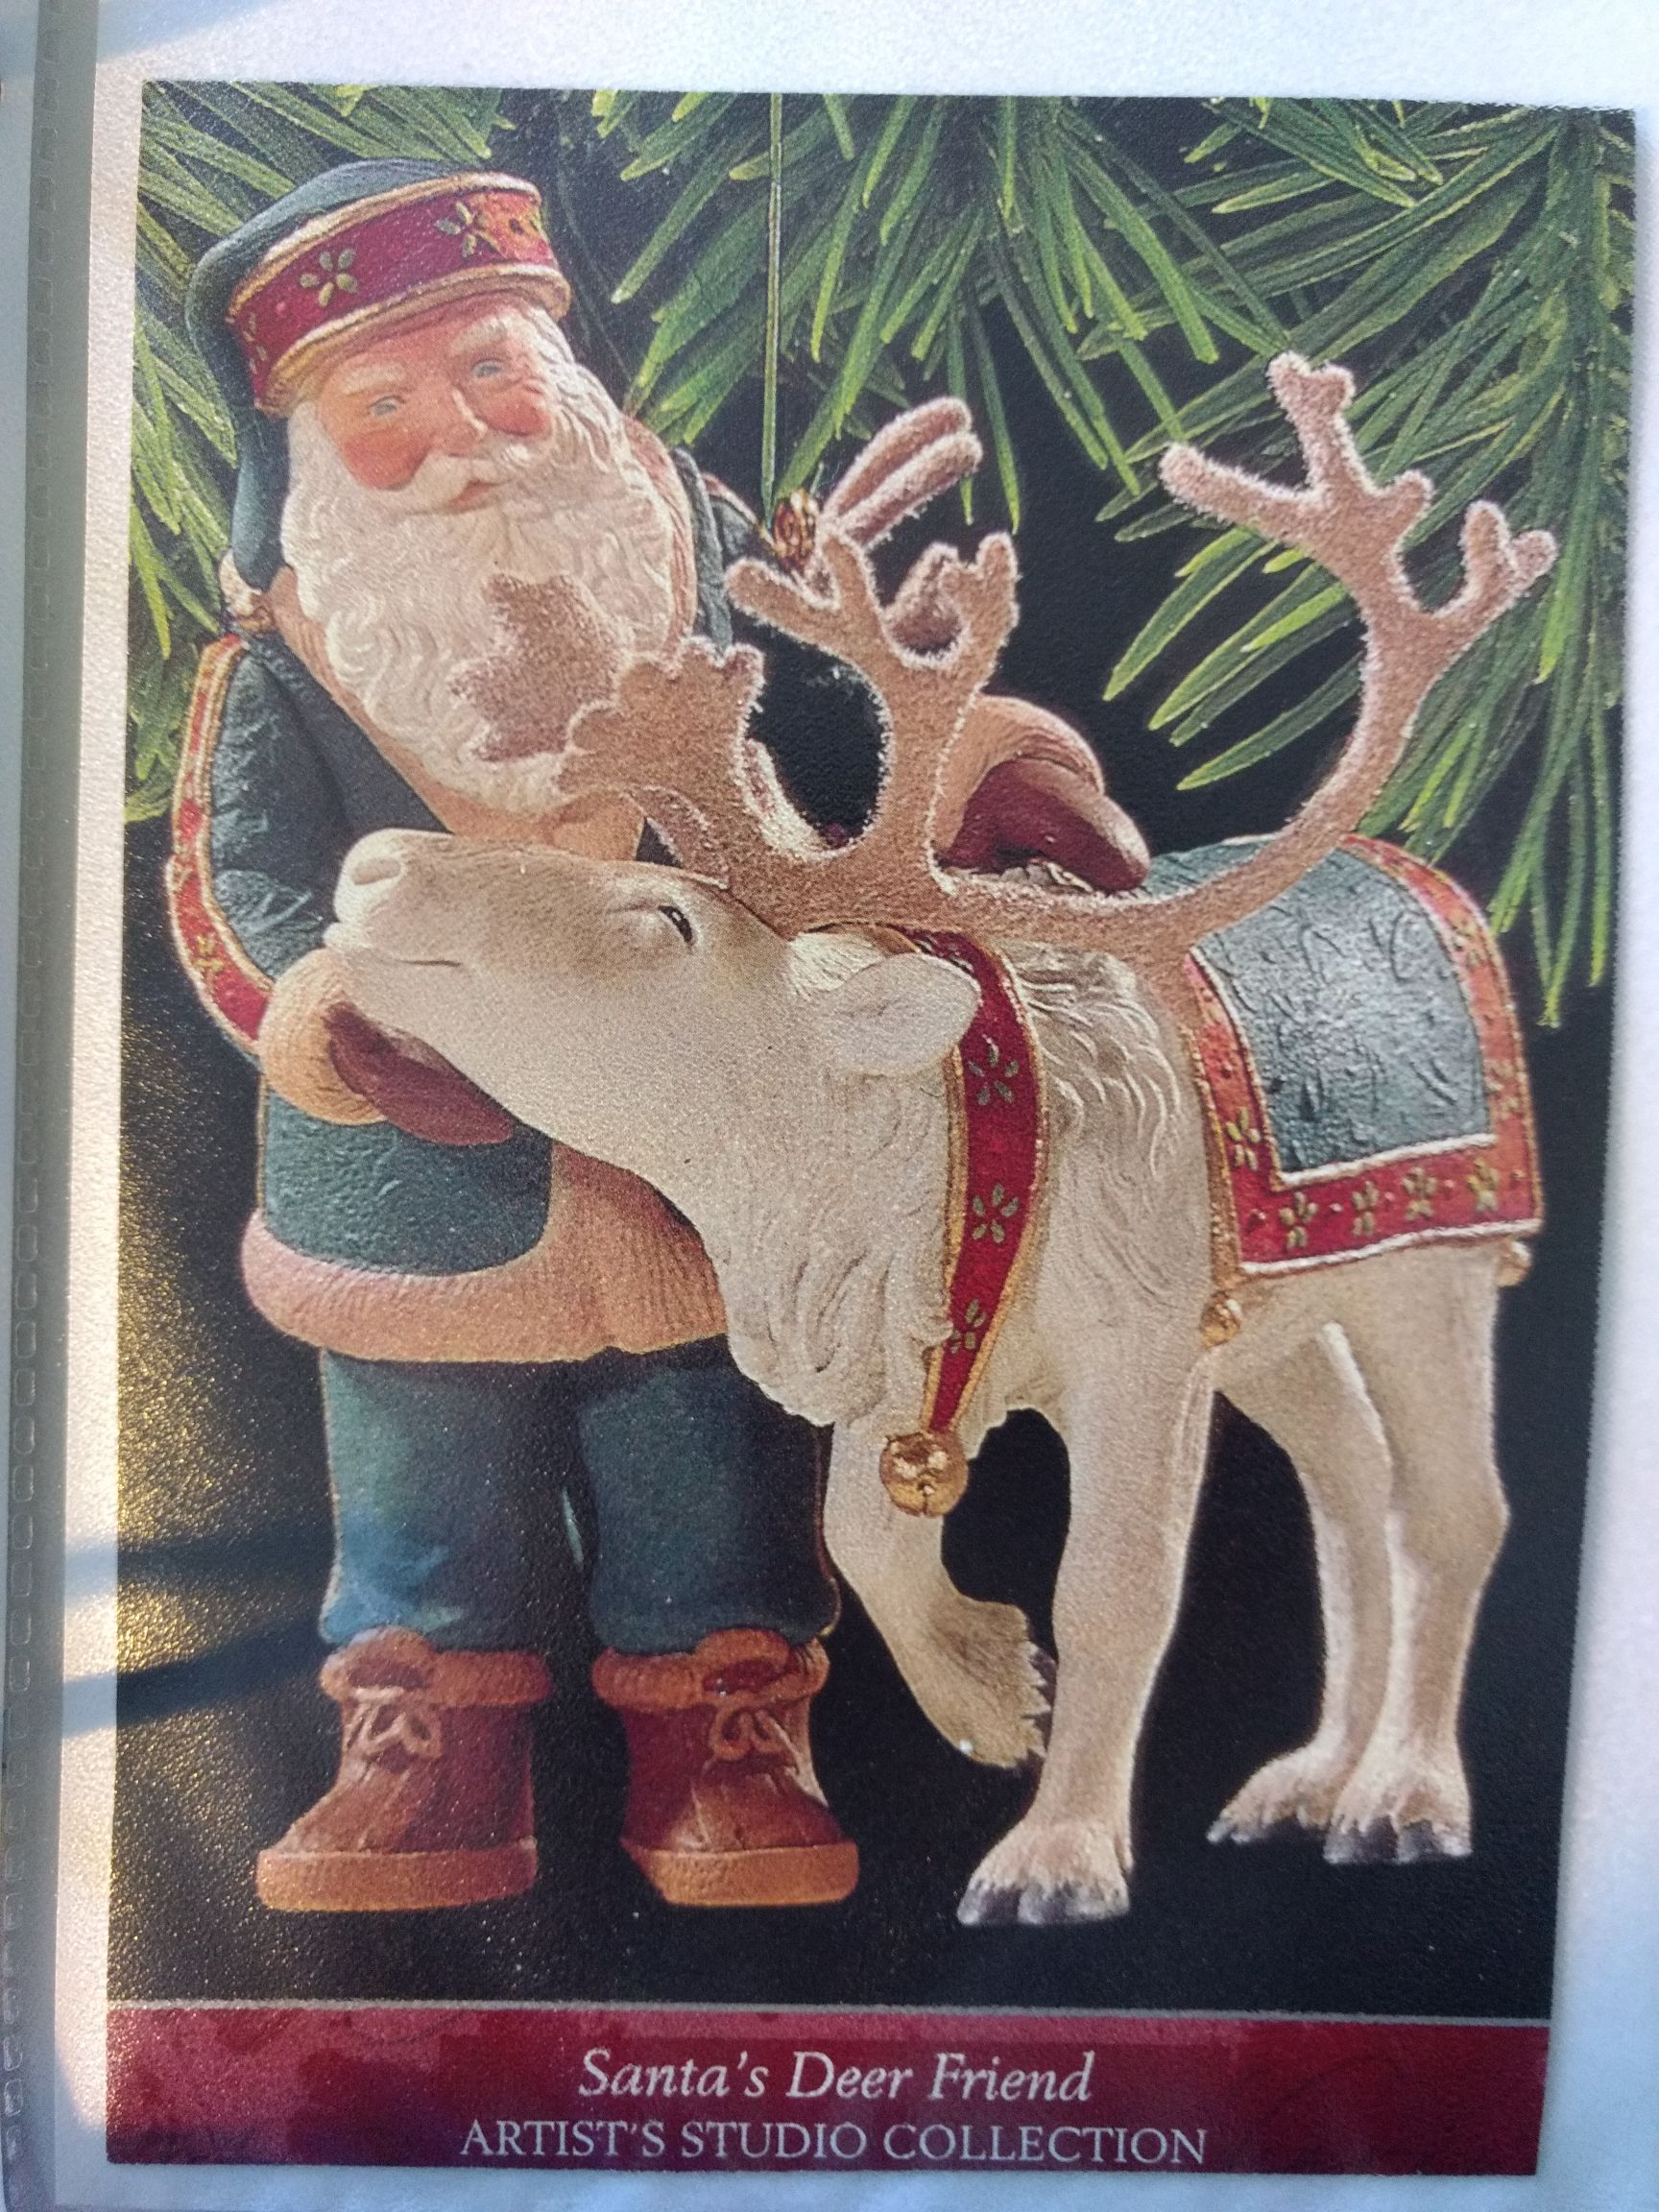 Santa - Santa's Deer Friend Ornament - Hallmark front image (front cover)